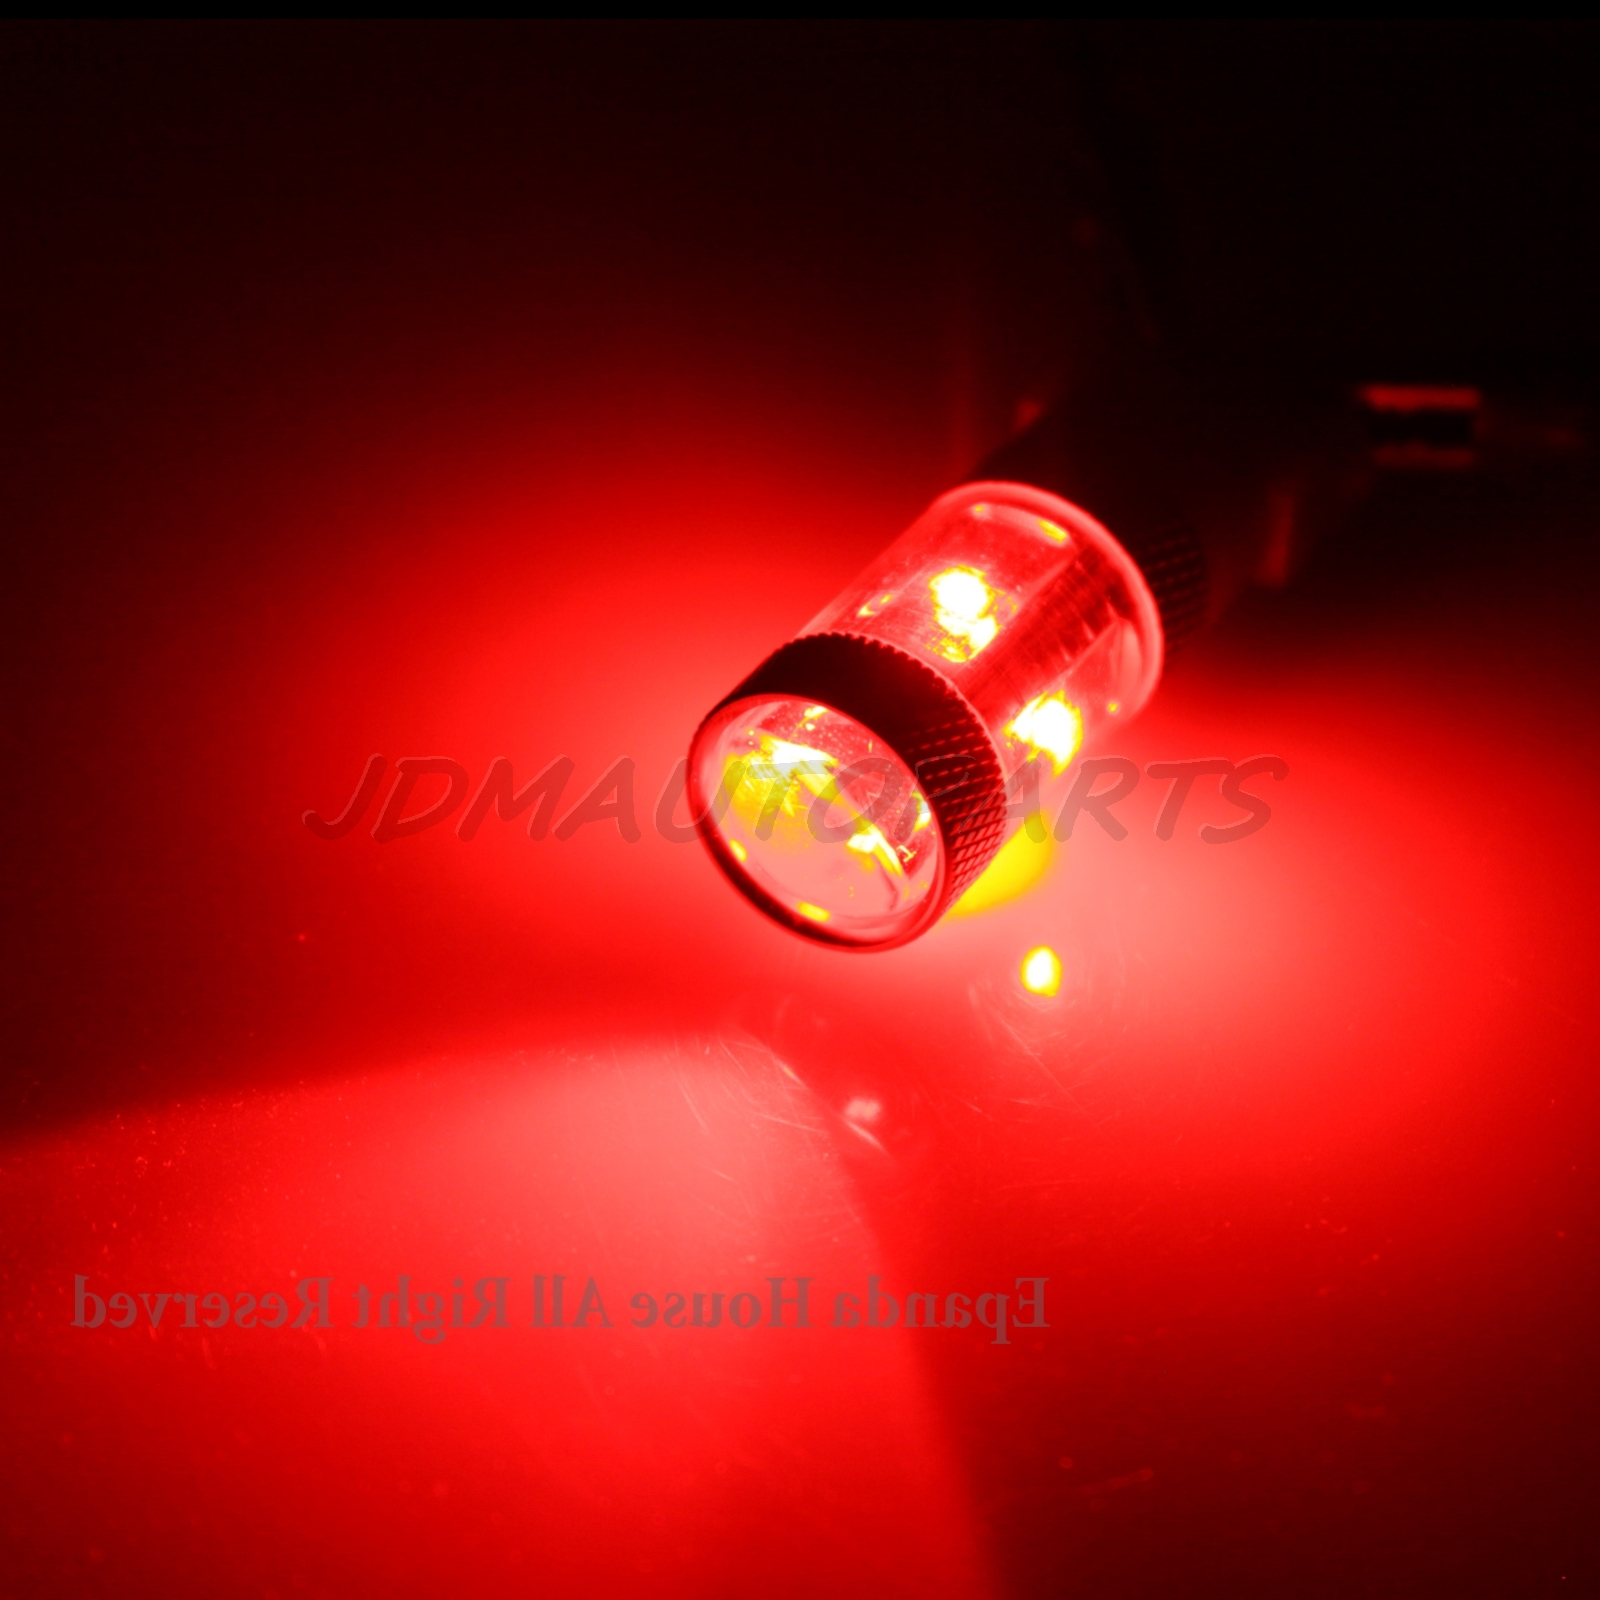 Function Linklight Led Lichtleiste 7 5w For 86 Brz 2x 7443 7440 30w Osram Red Led Front Rear Turn